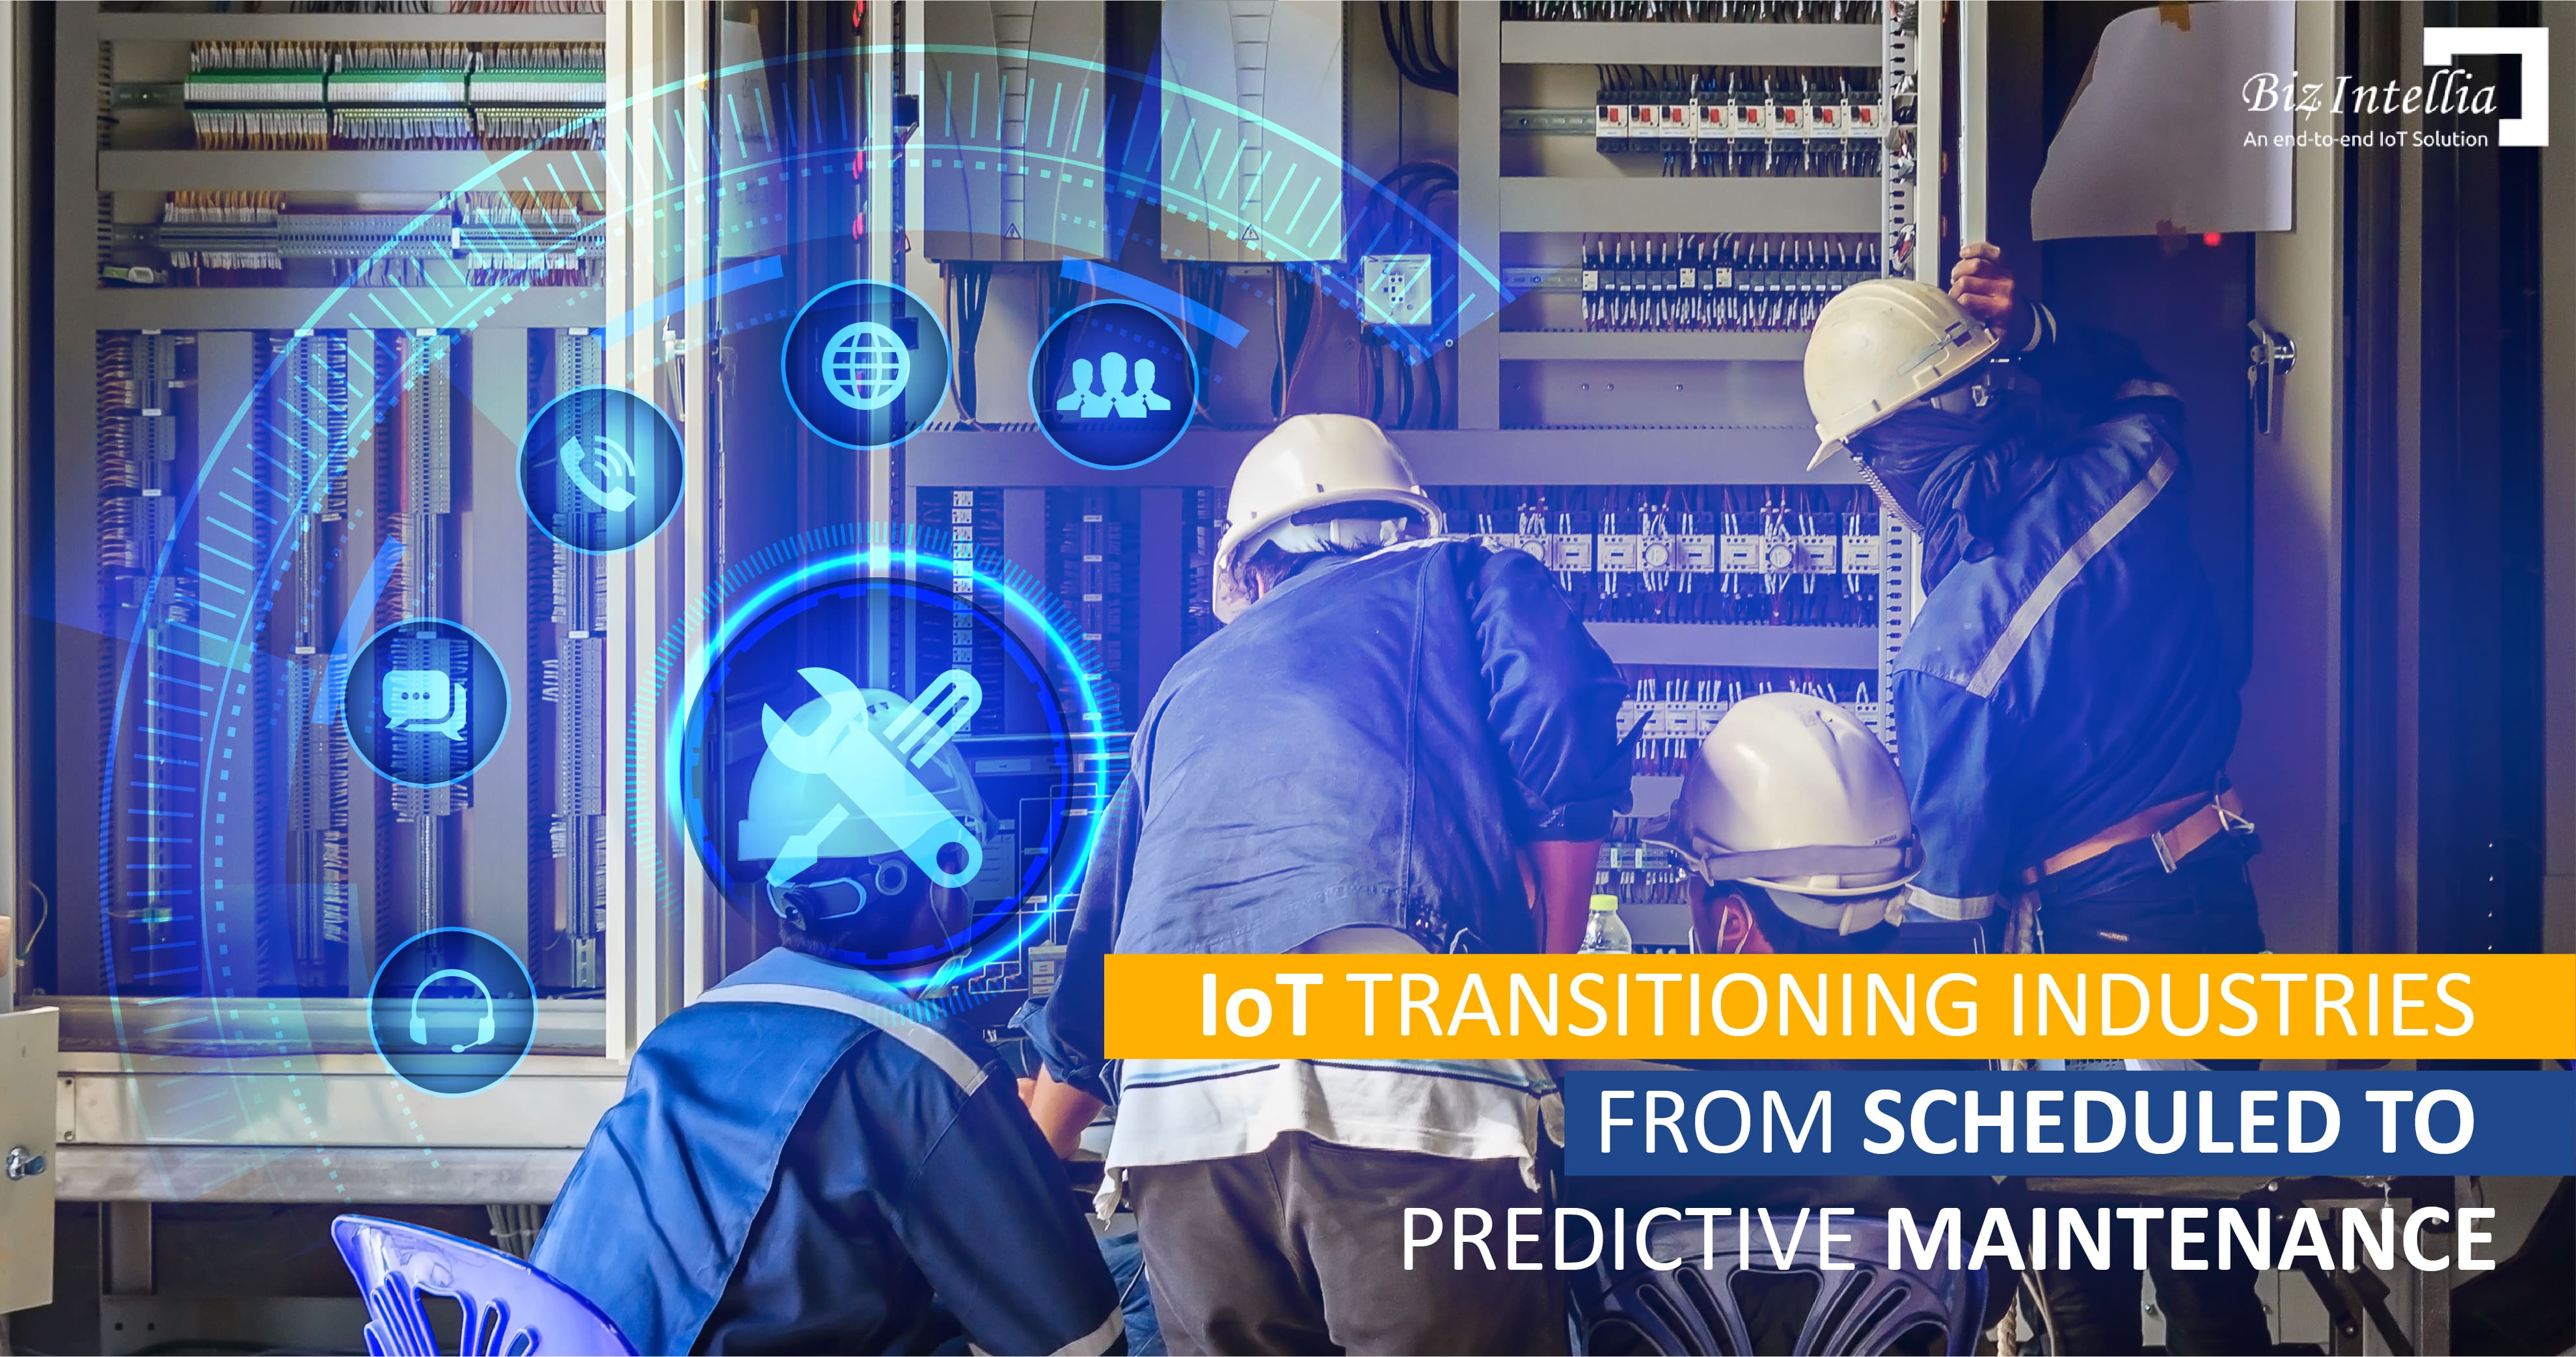 iot-transitioning-industries-from-scheduled-to-predictive-maintenance